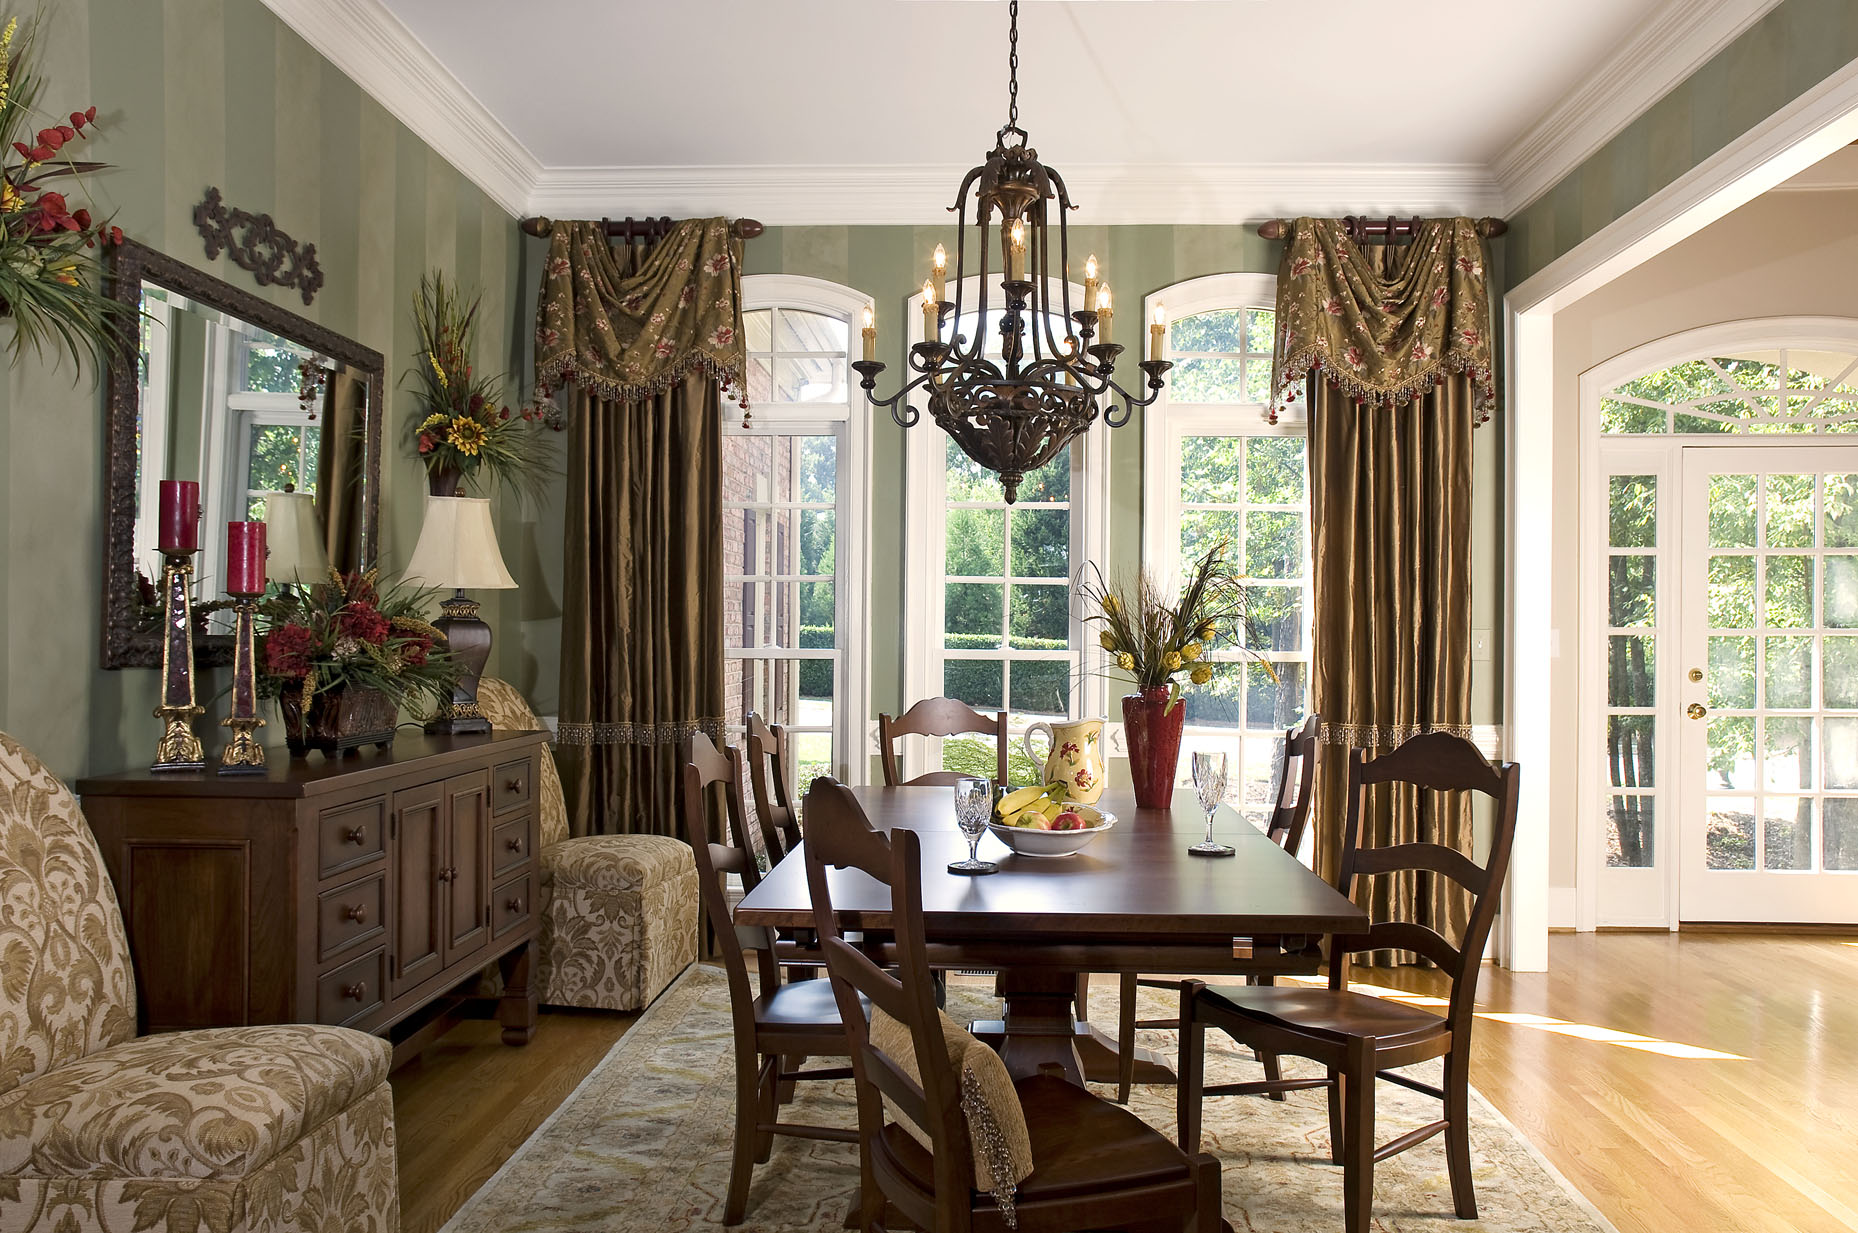 Decorating den interiors blog interior decorating and for Elegant dining room decor